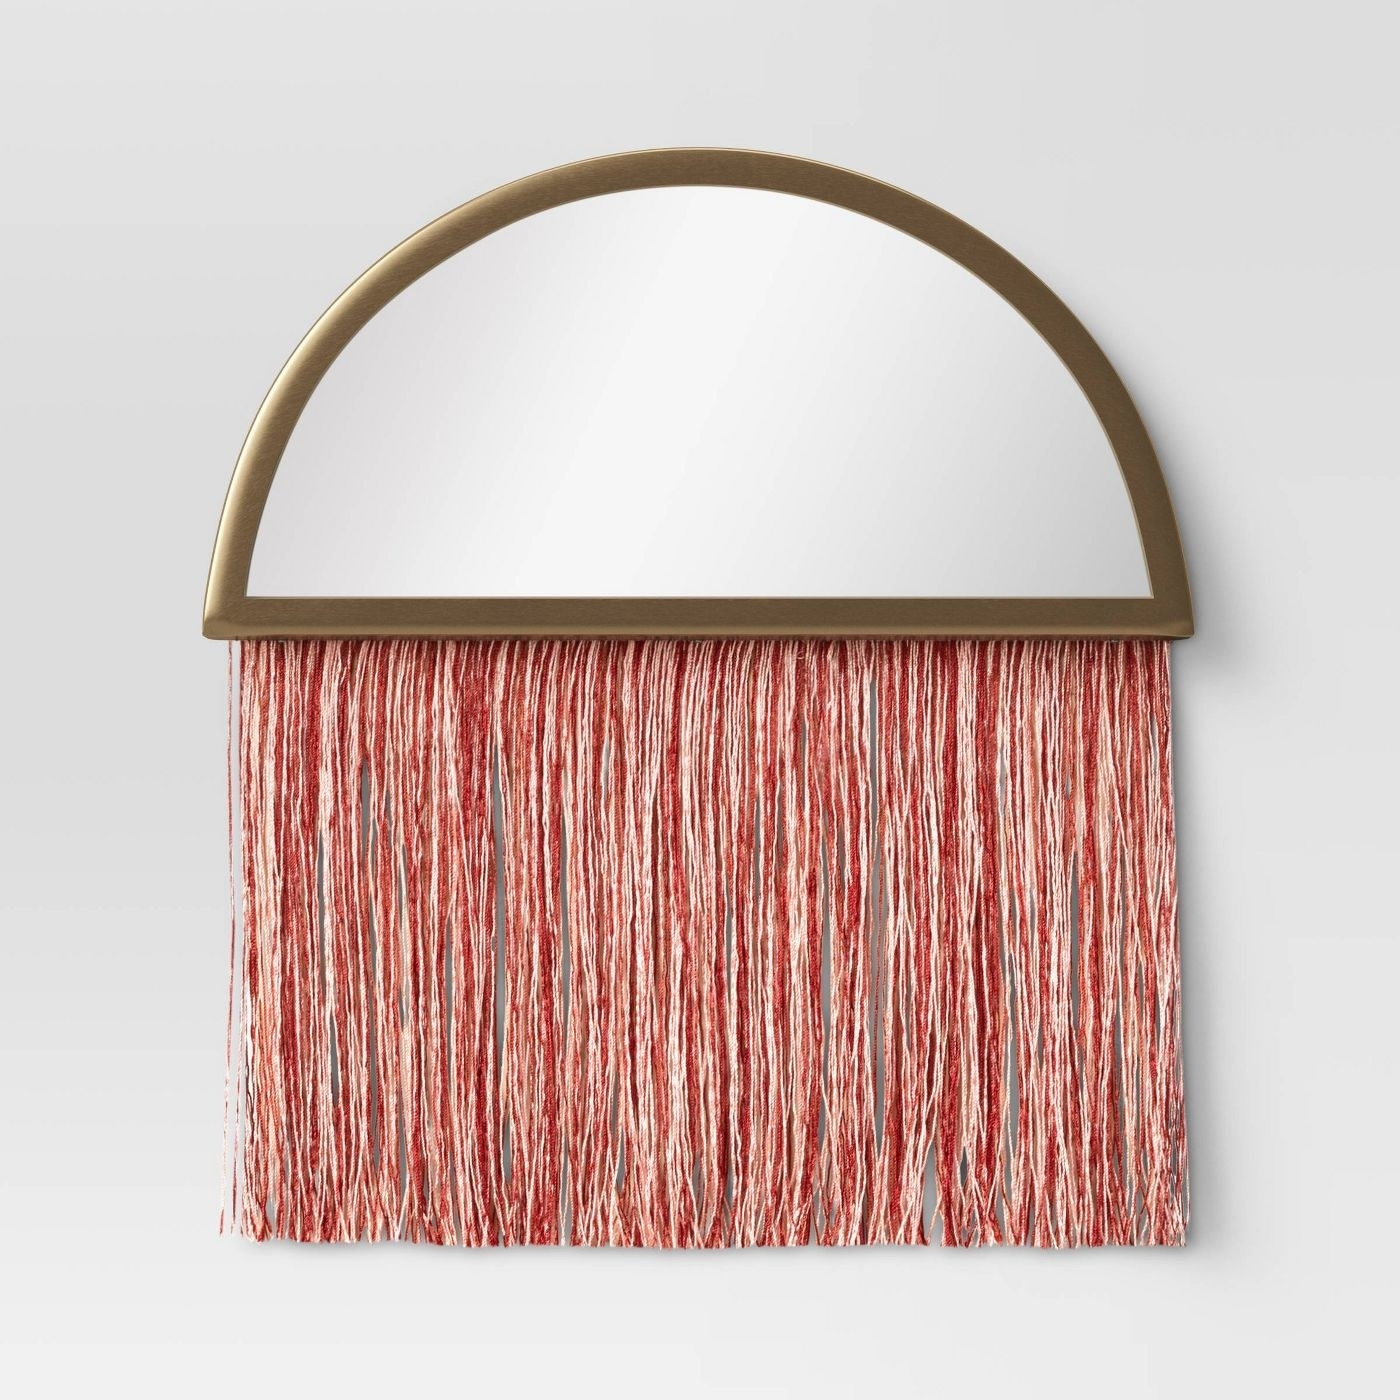 A moon-shaped mirror with pink threads